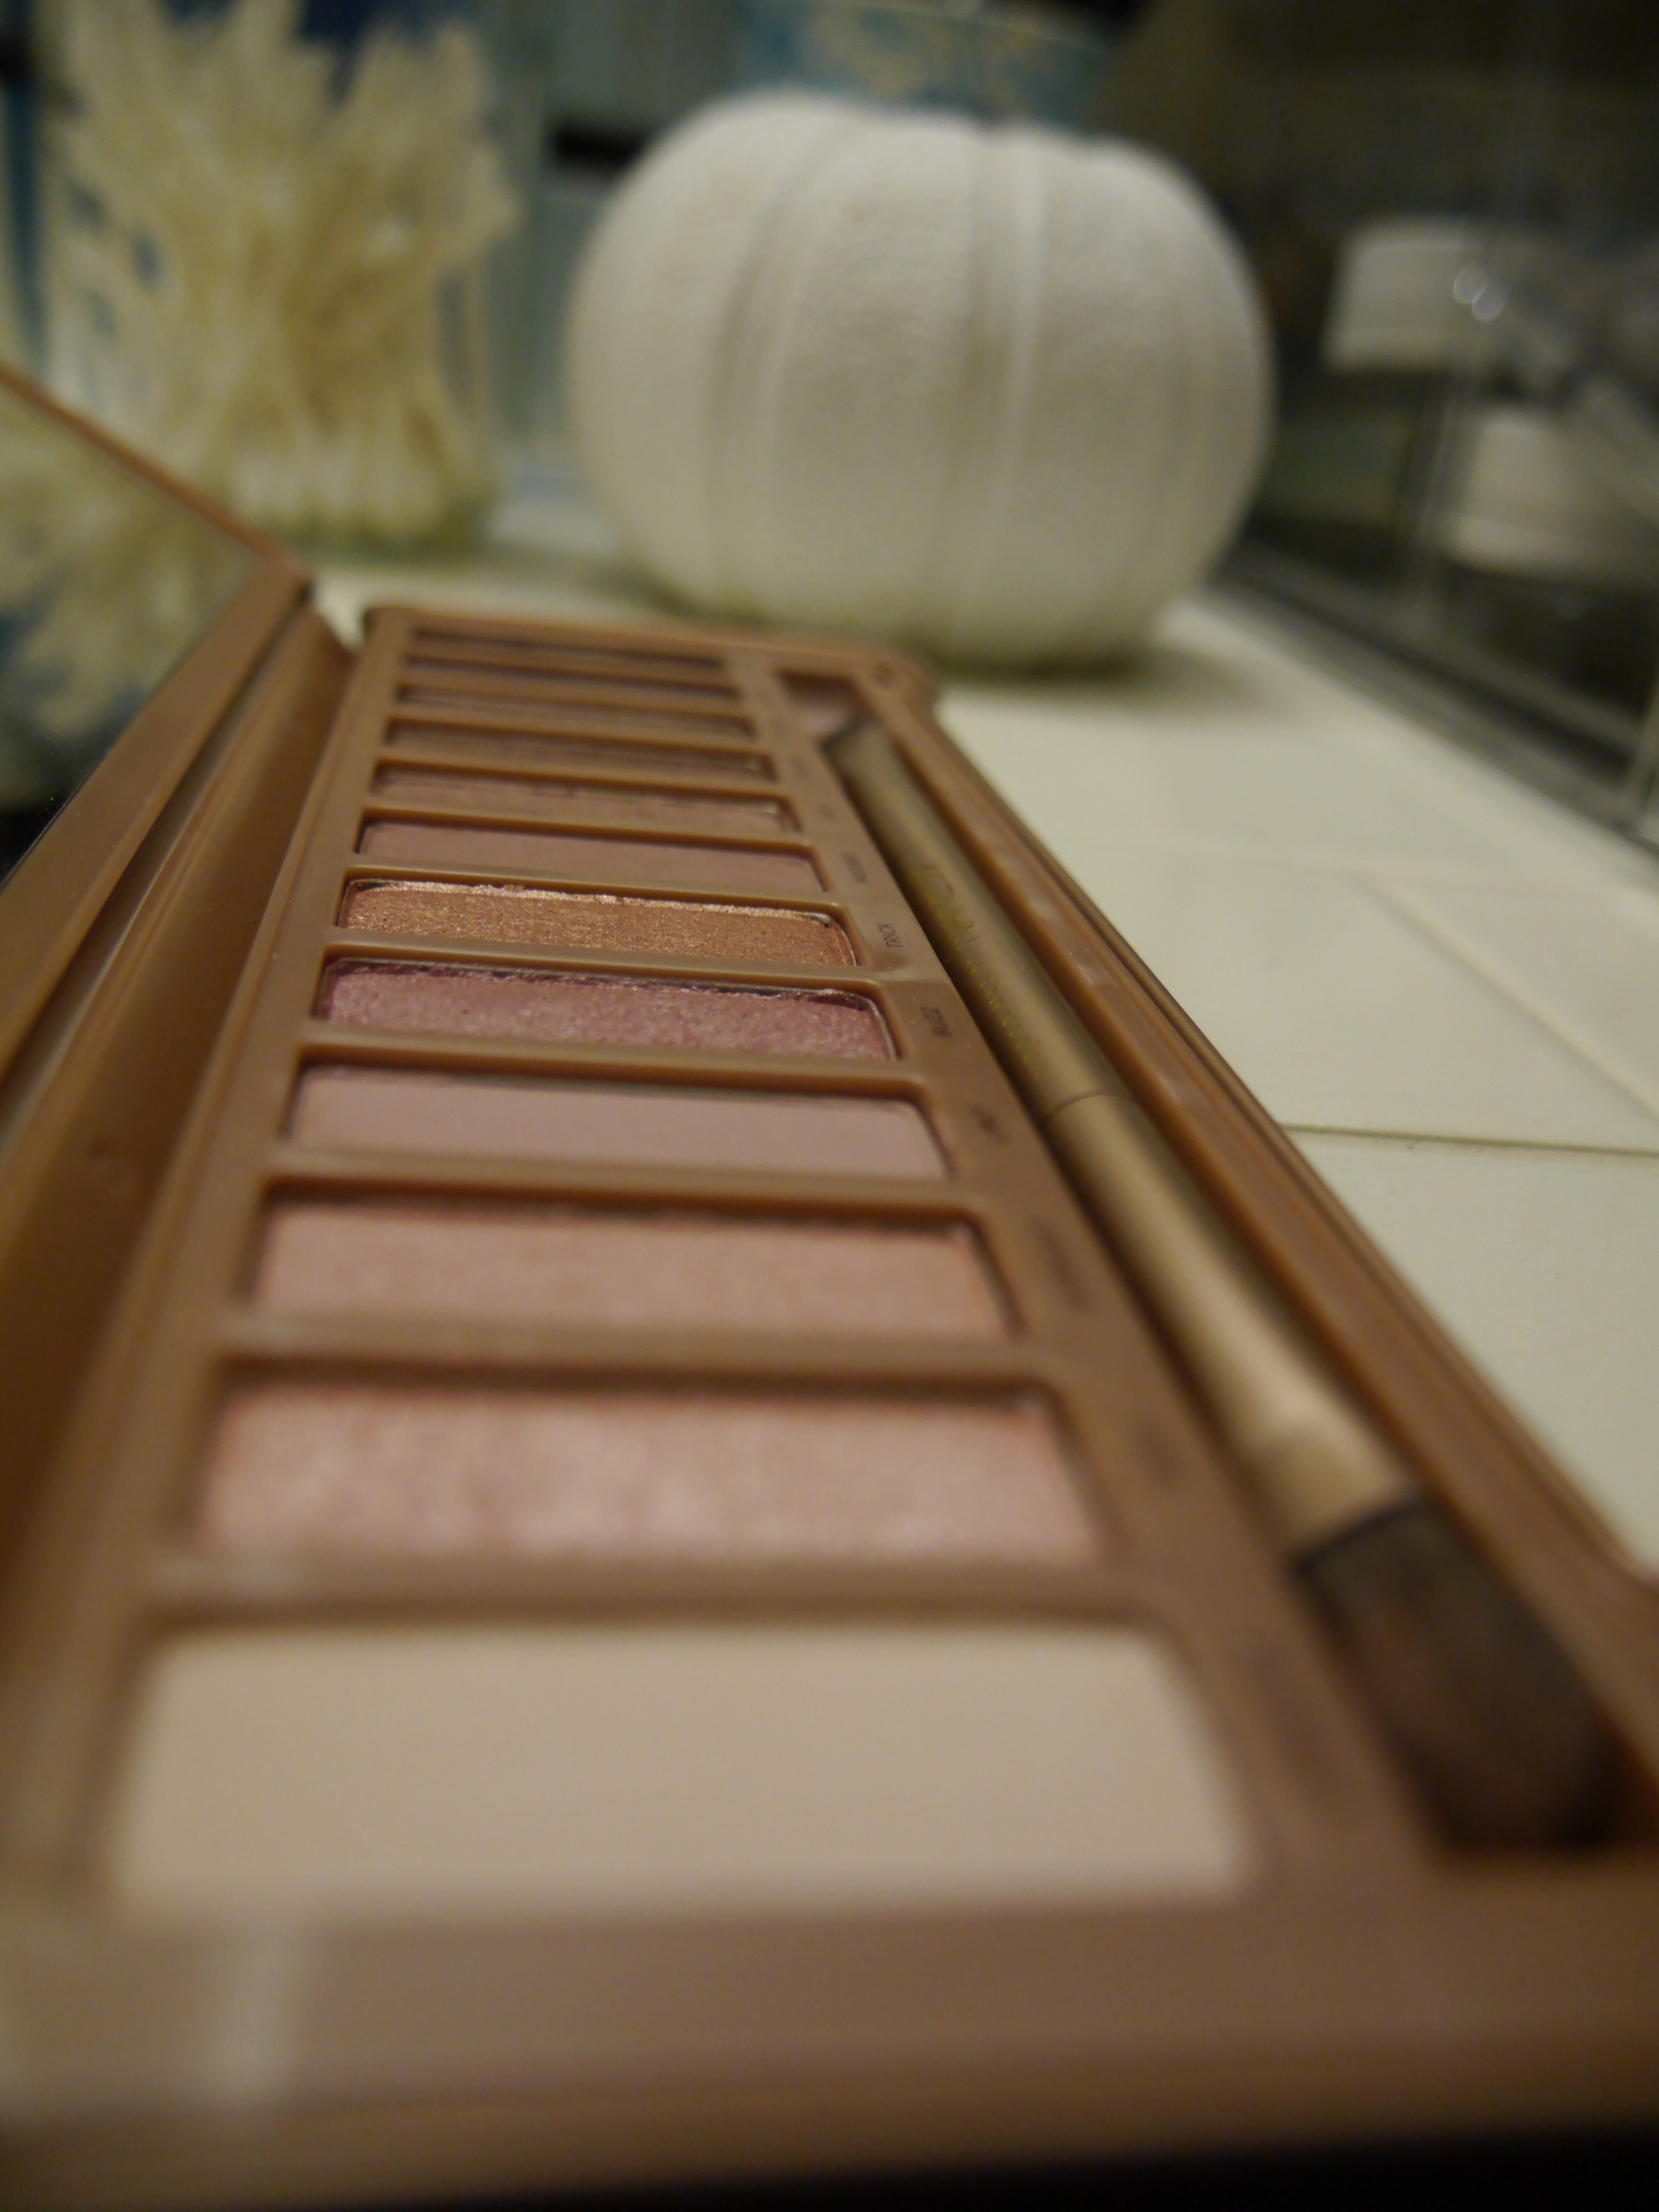 urban-decay-naked-3-palette-swatches.jpeg